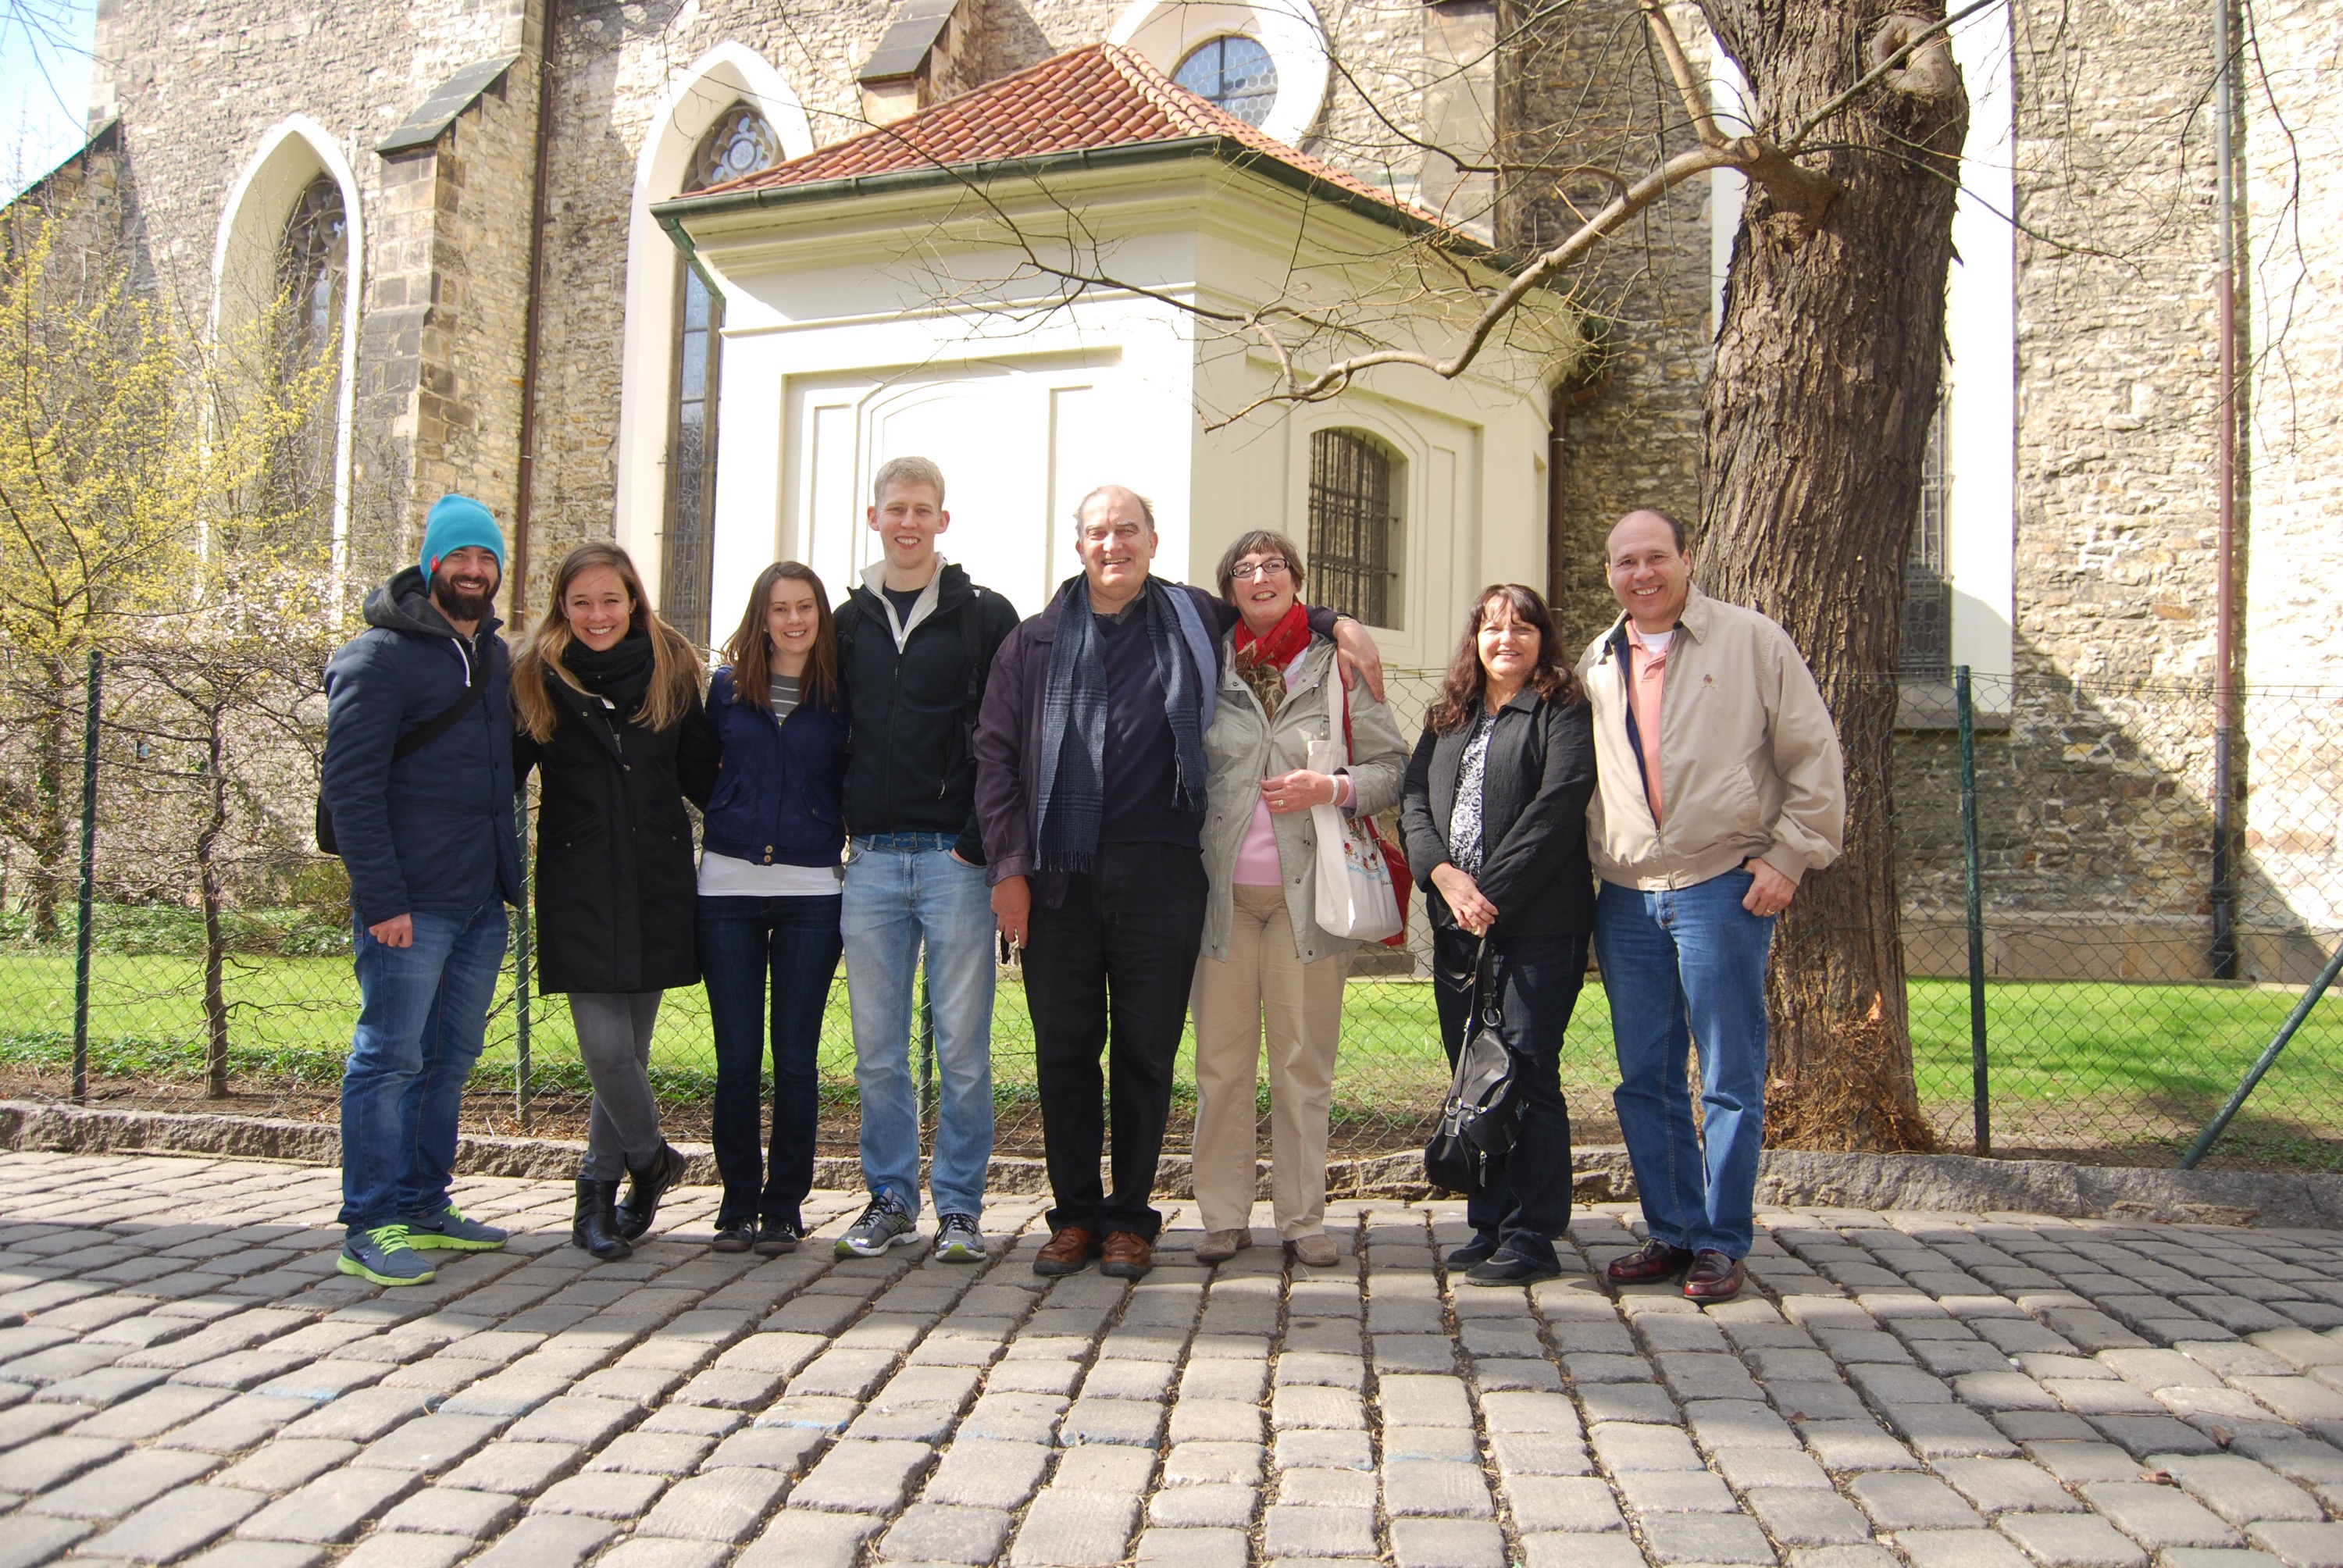 Our merry band of foodies on our Eating Prague Tour